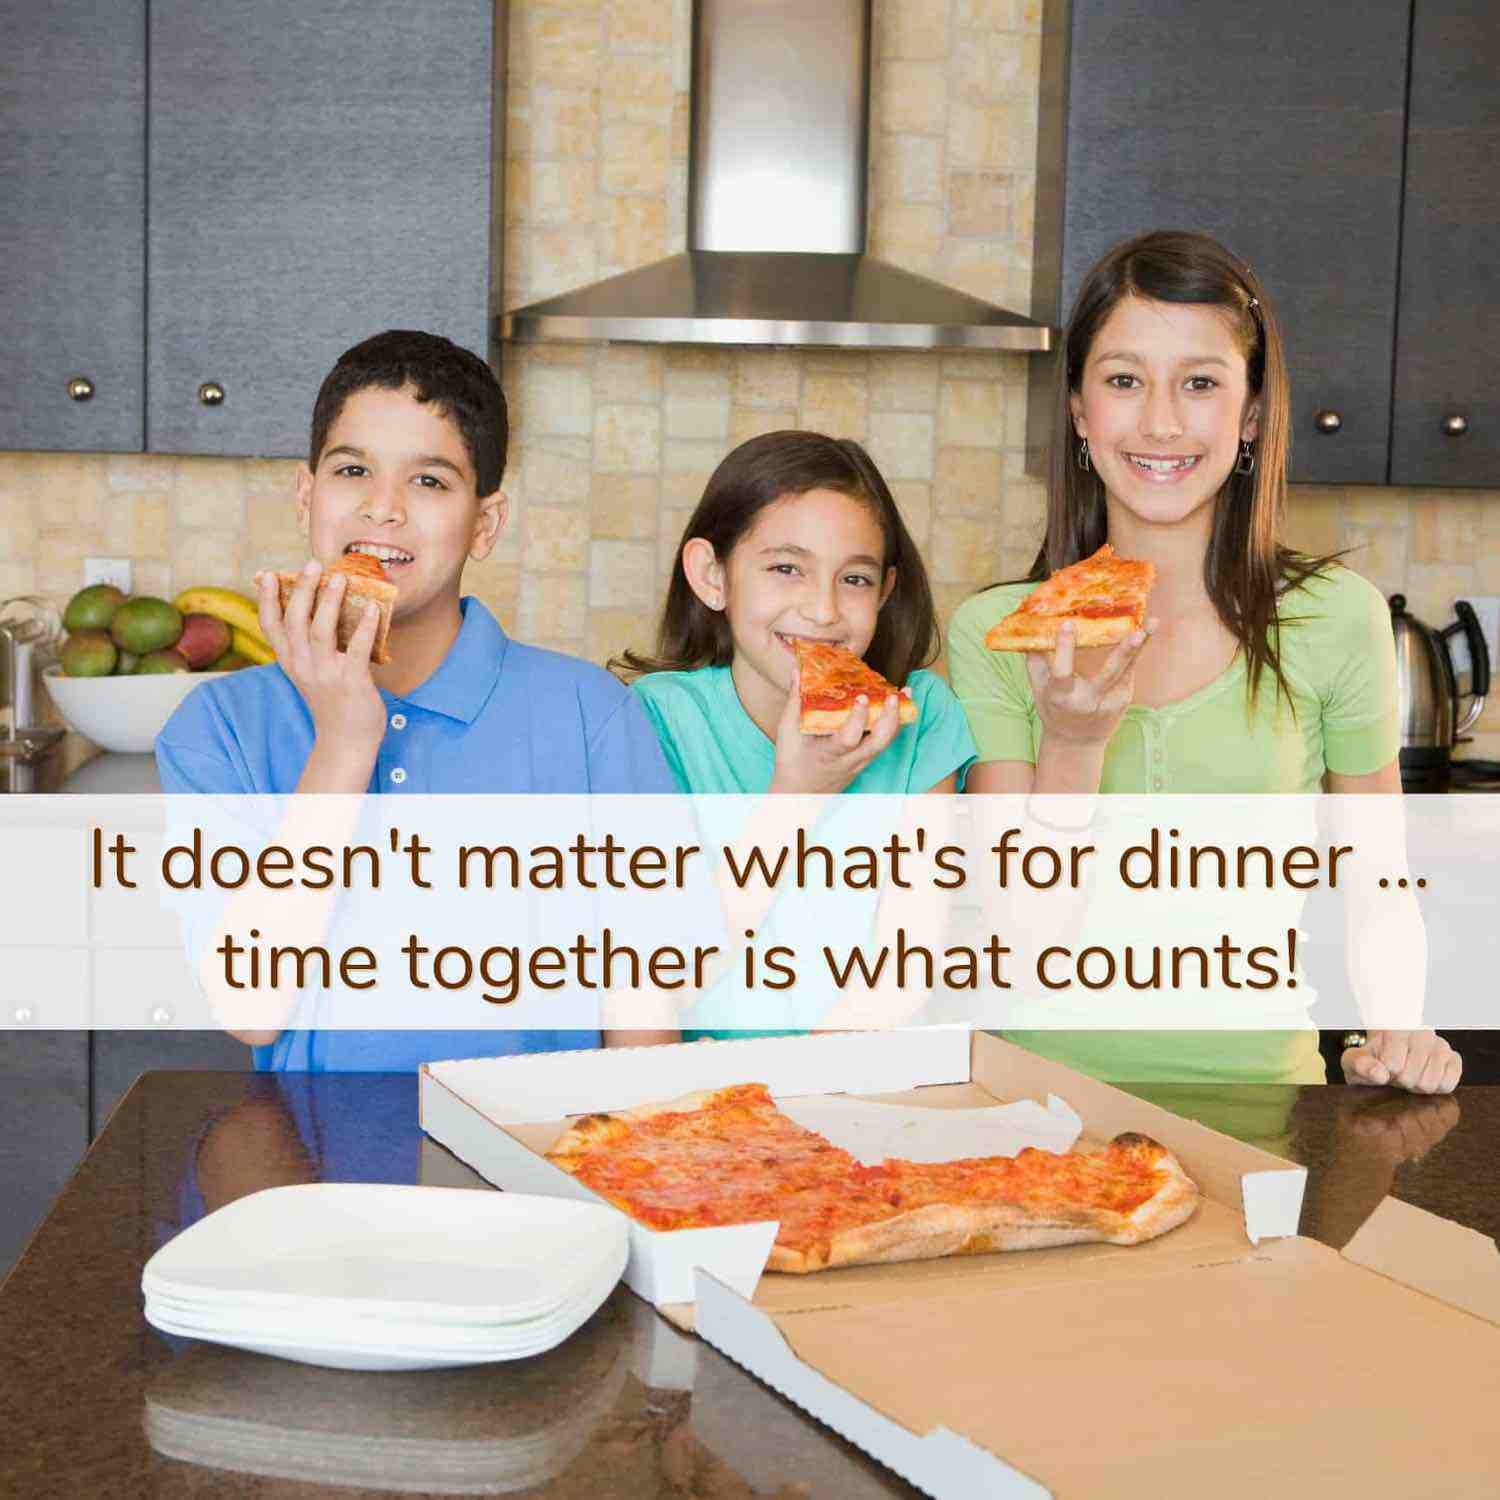 3 happy siblings eating pizza at the kitchen counter